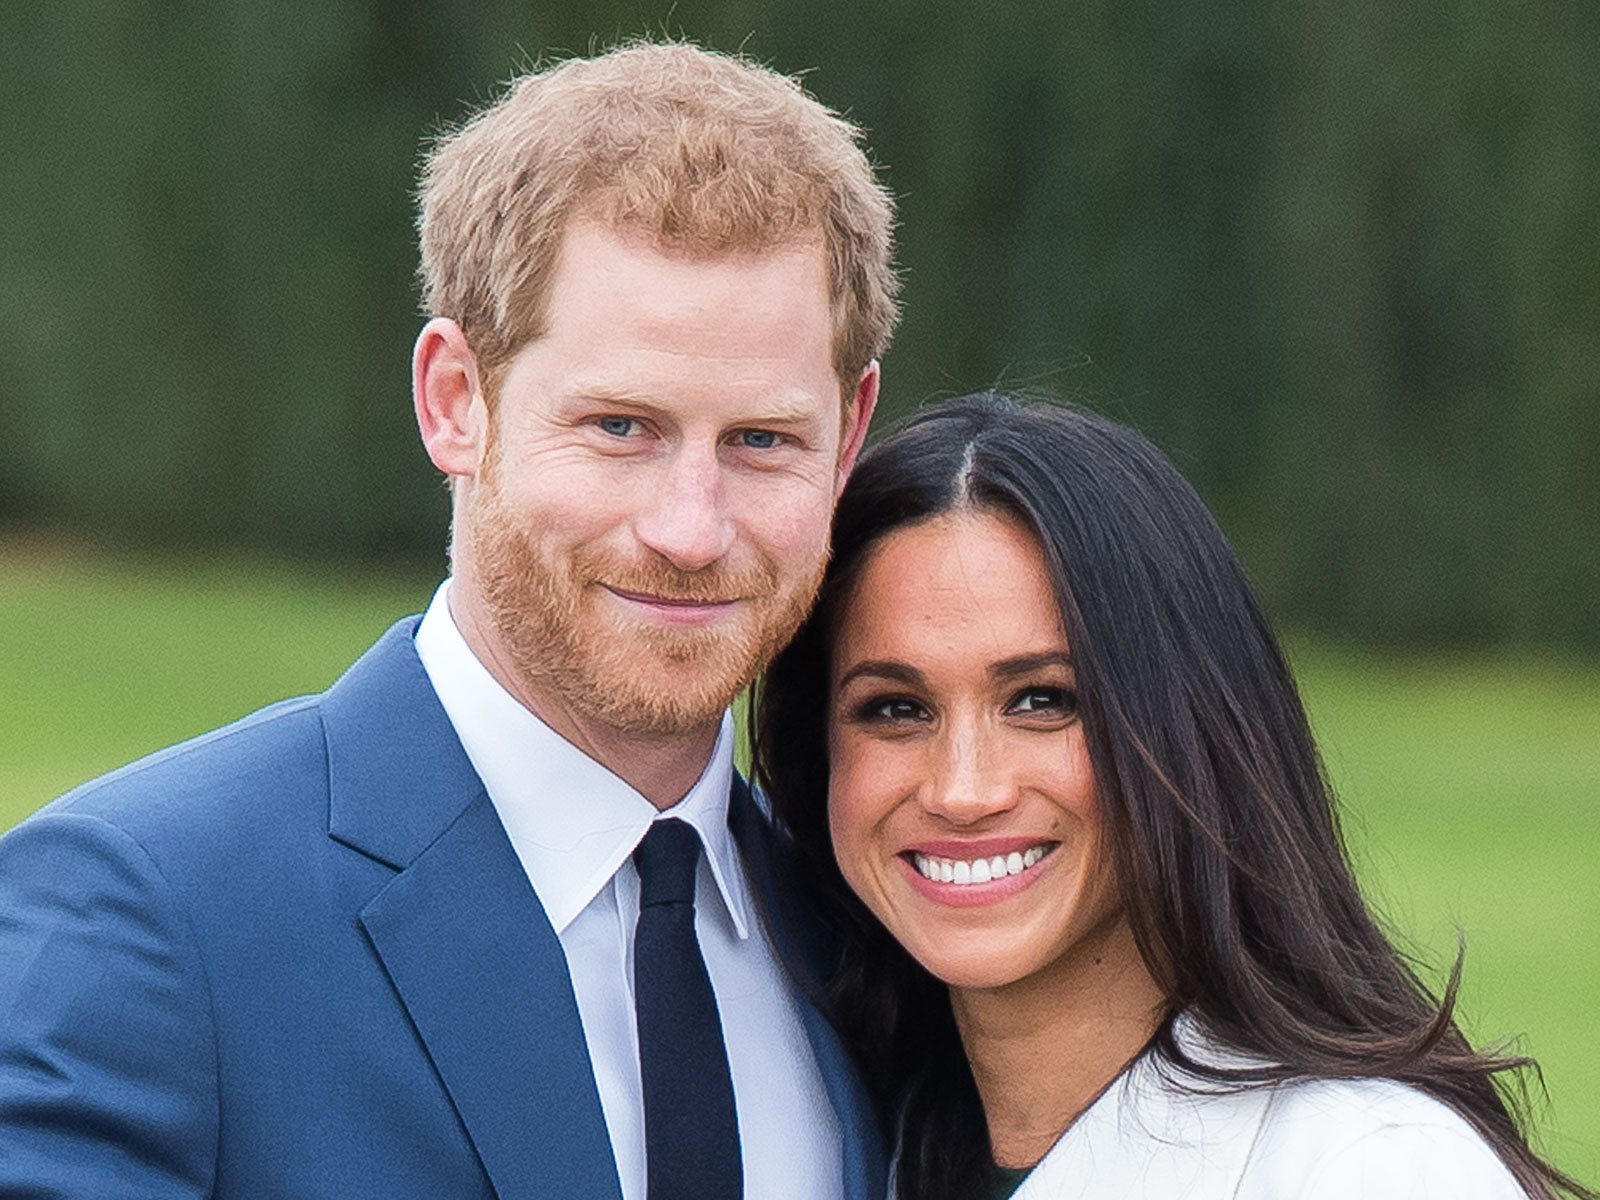 Prince Harry and Meghan Markle Share Their Official Engagement Photos — and They're Stunning!